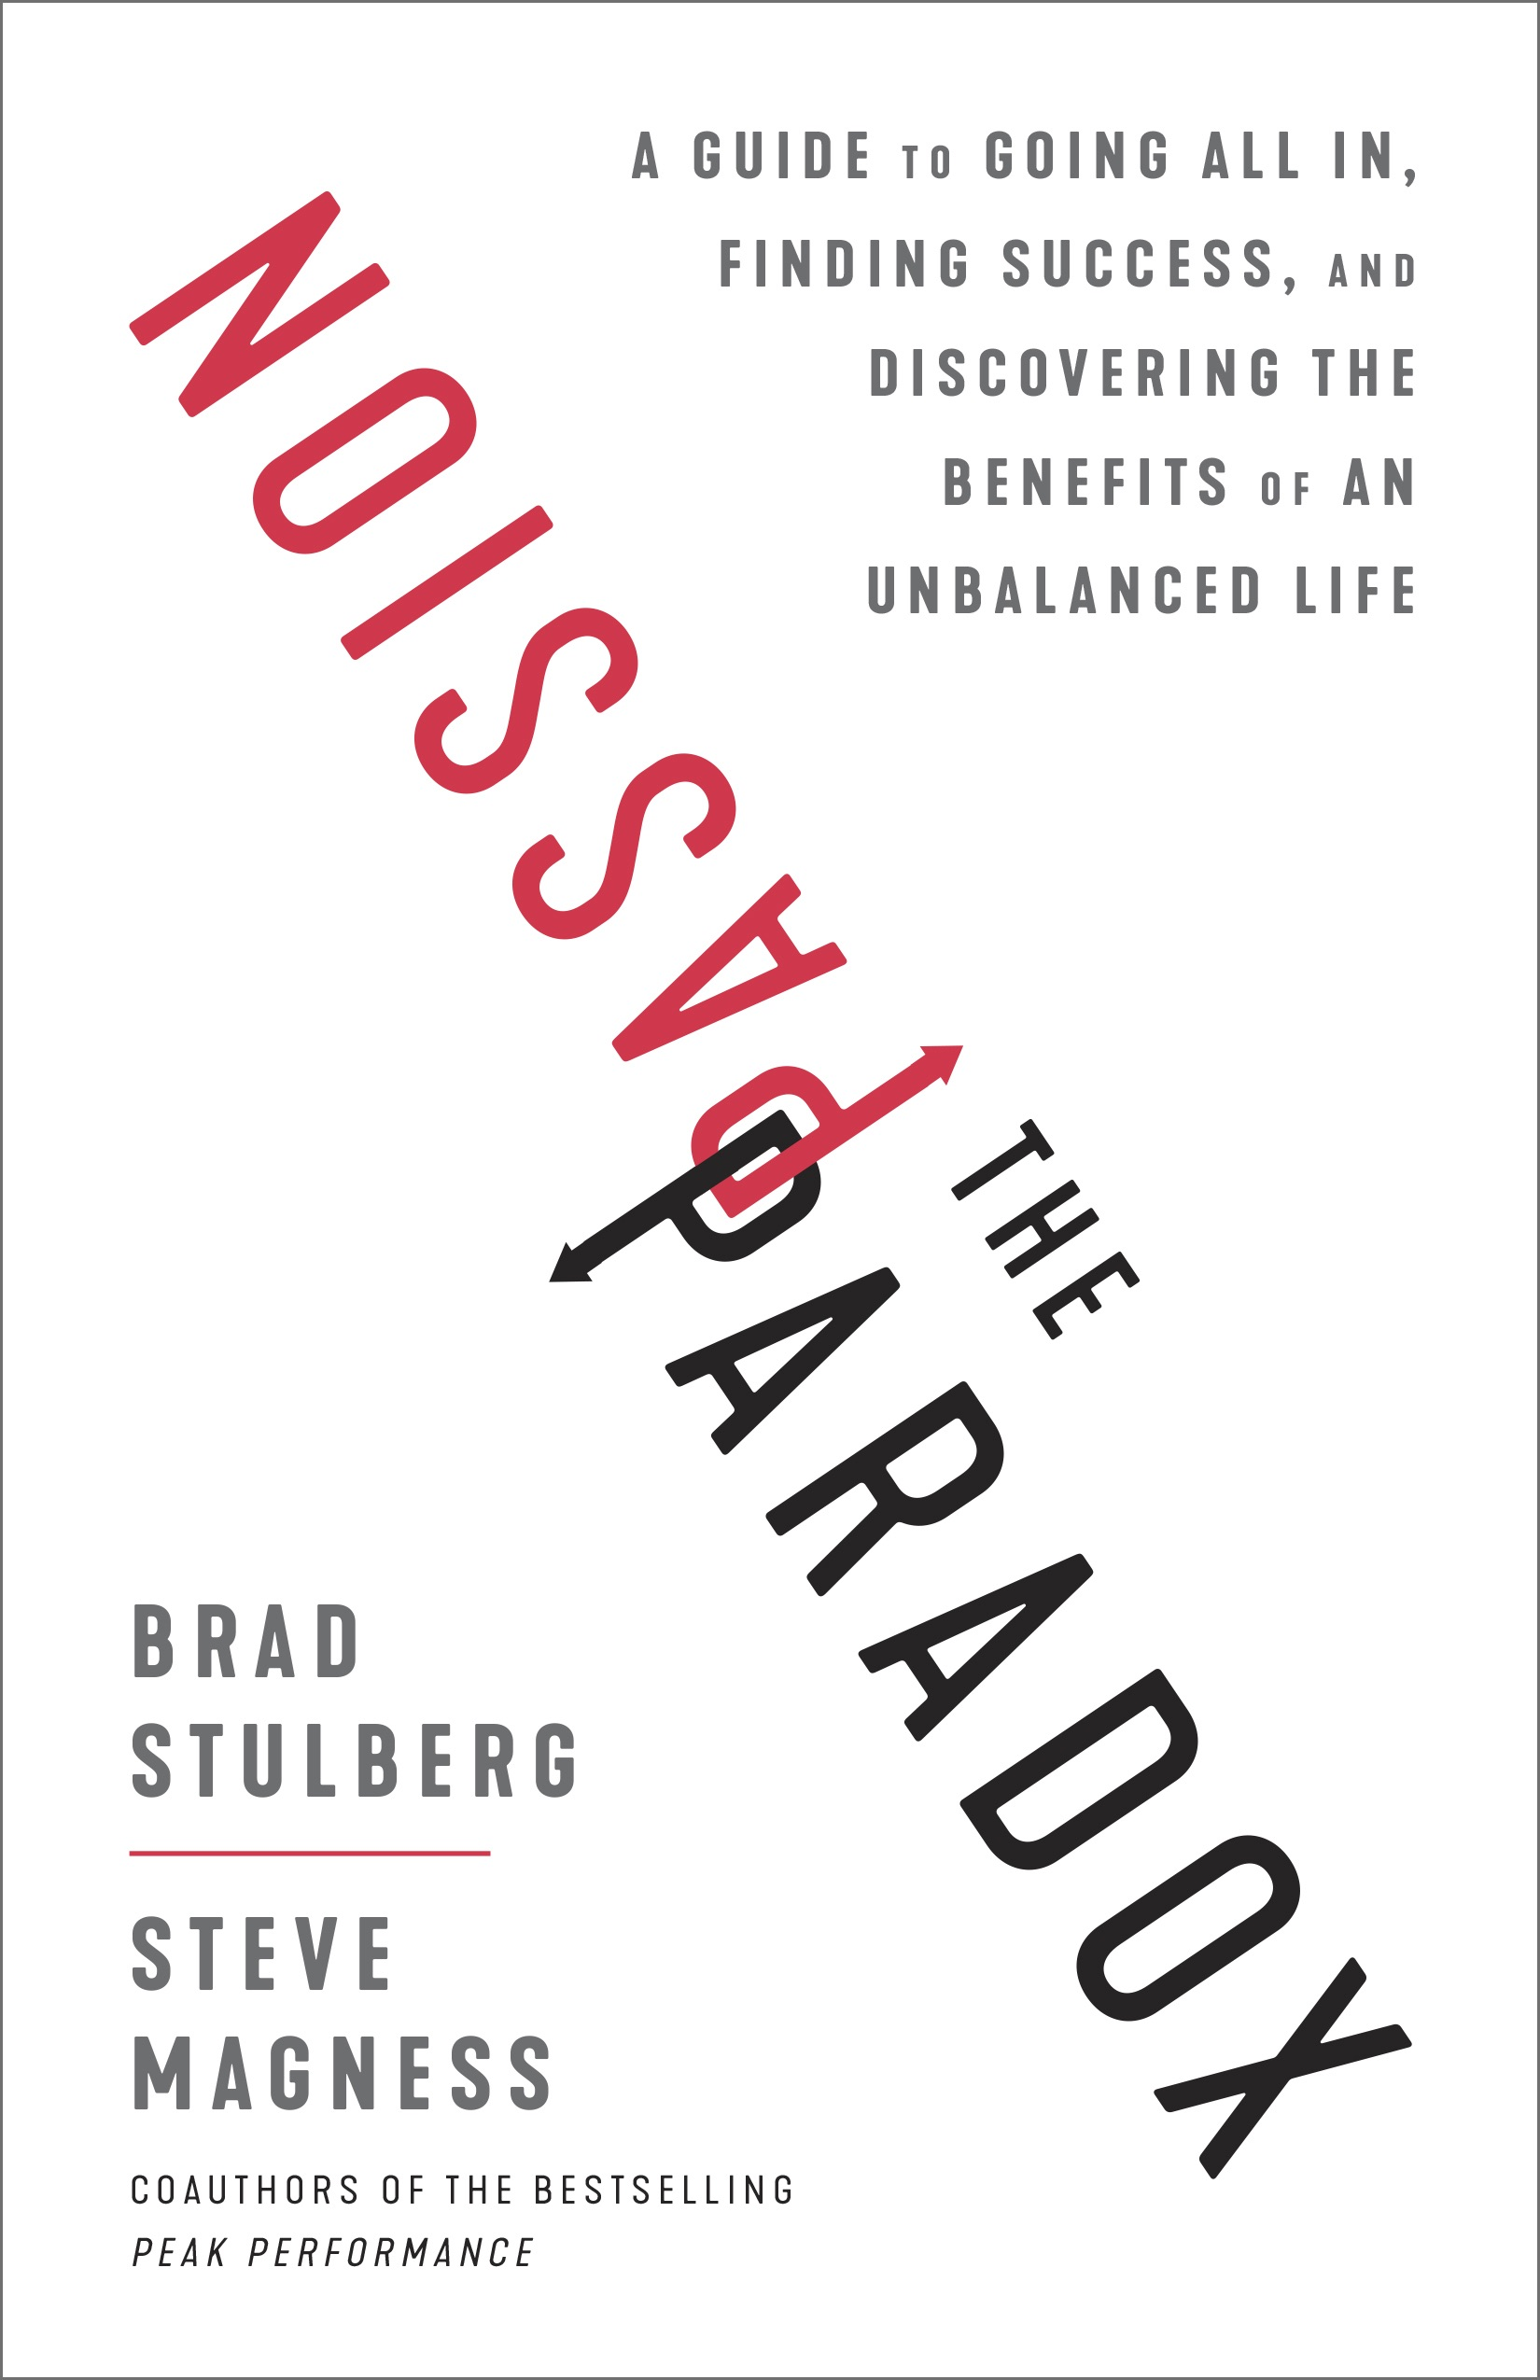 The passion paradox book cover by Brad Stukberg.